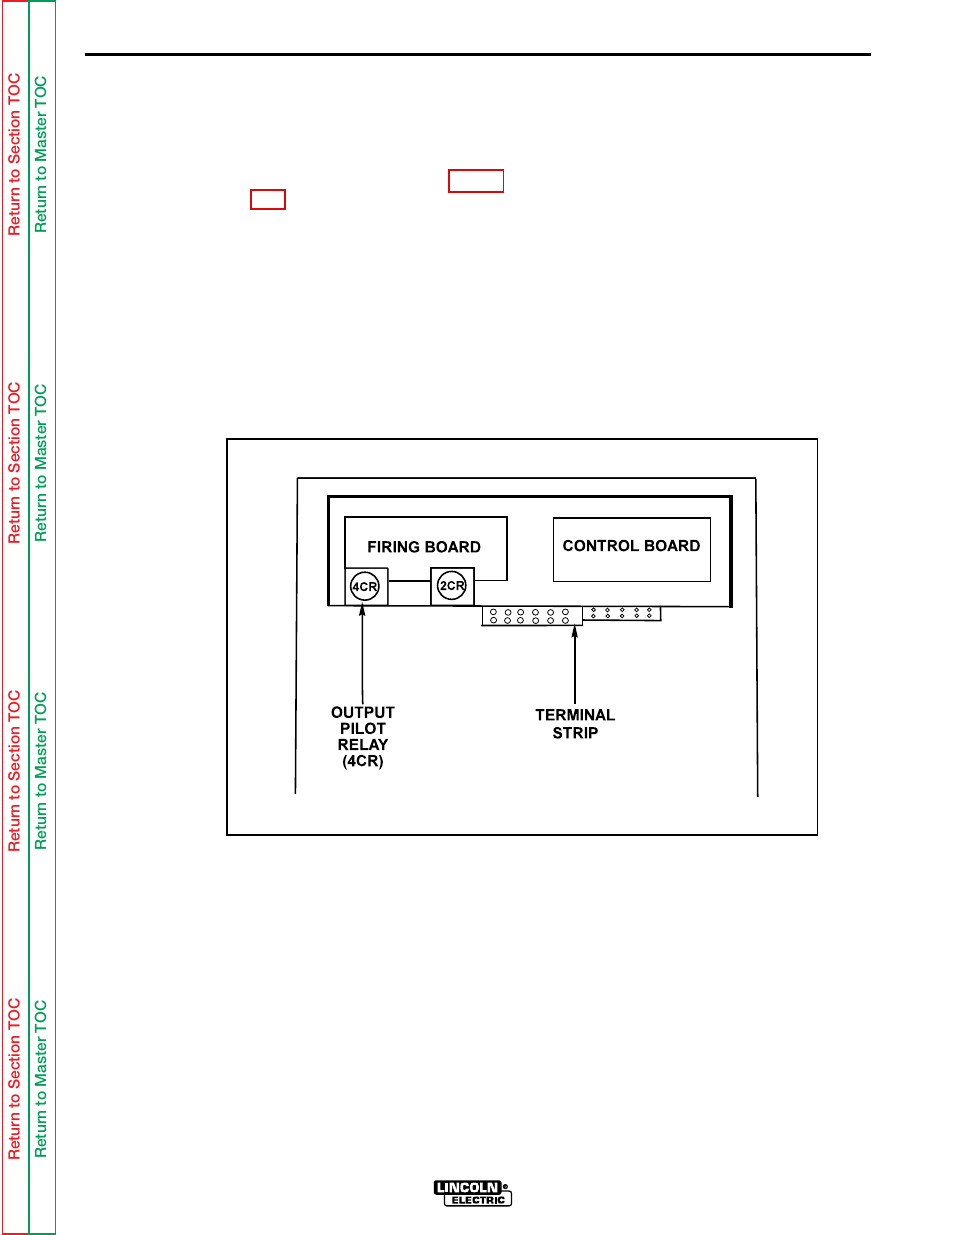 hight resolution of troubleshooting repair firing board test lincoln electric idealarc dc 1000 svm123 a user manual page 63 113